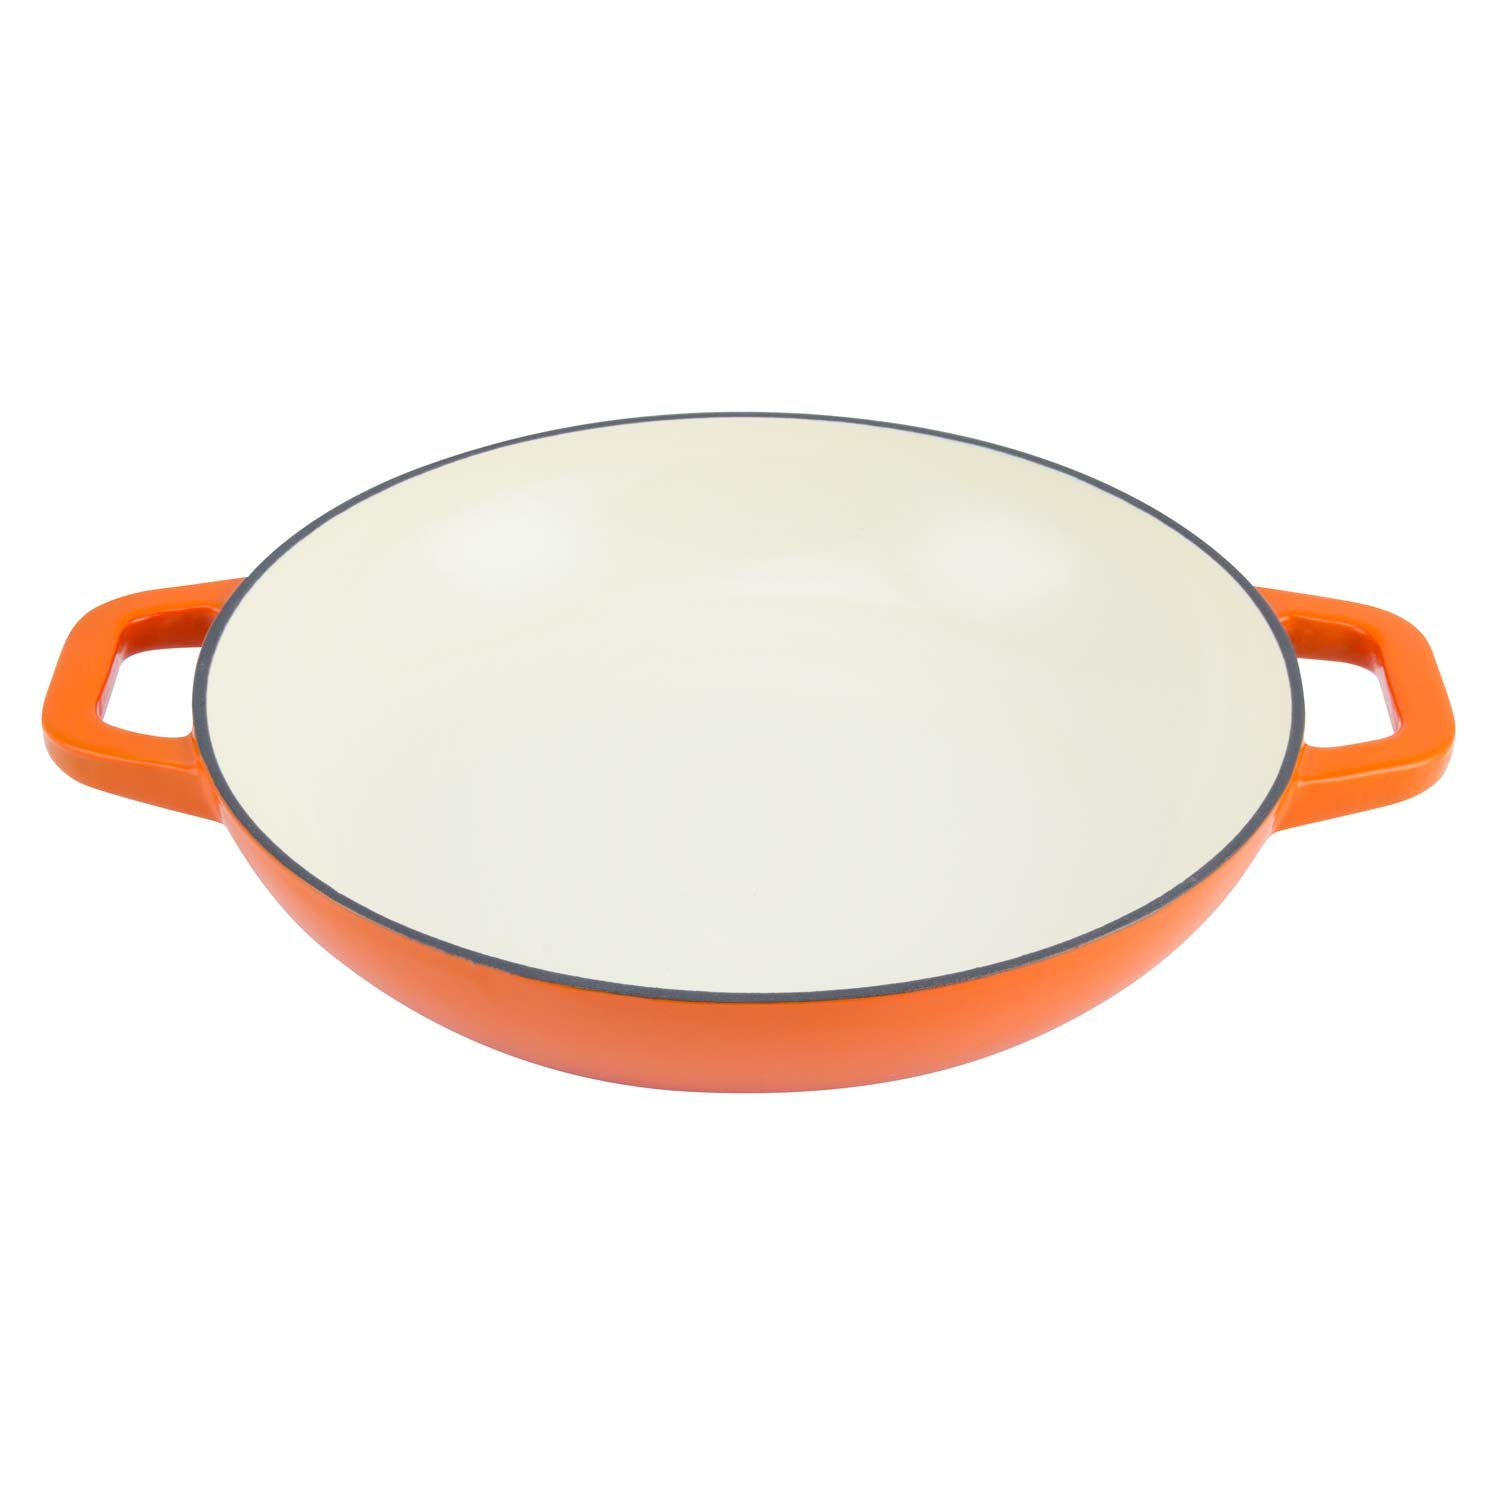 Slow Cooking Tangerine Orange ZEL-CD-ORG Perfect for Braising Simmering and Baking Zelancio Cookware 3-Quart Enameled Cast Iron Casserole Dish with lid